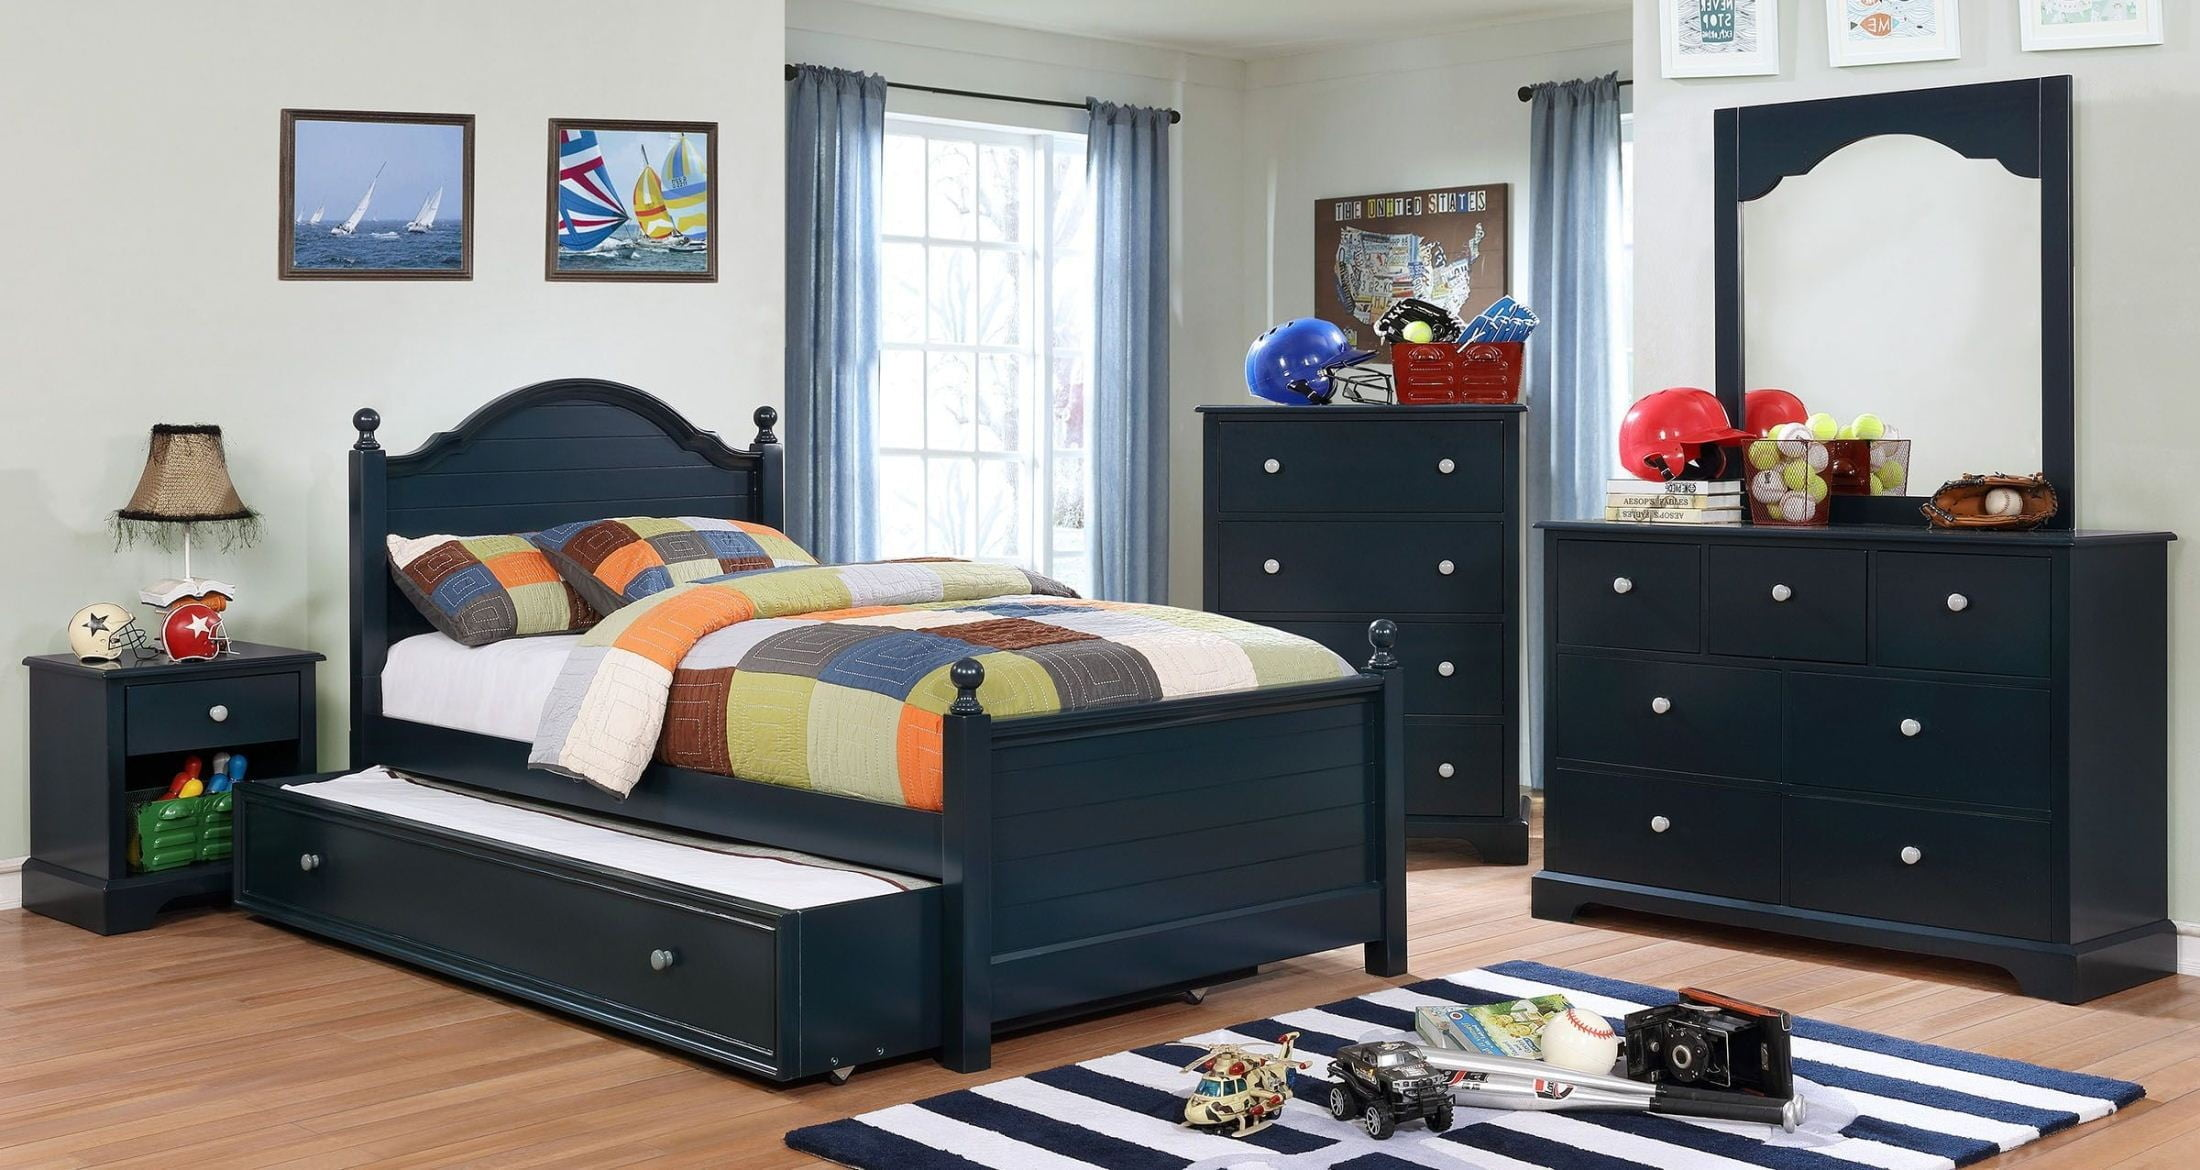 Diane blue youth storage platform bedroom set from furniture of america coleman furniture for Youth storage bedroom furniture